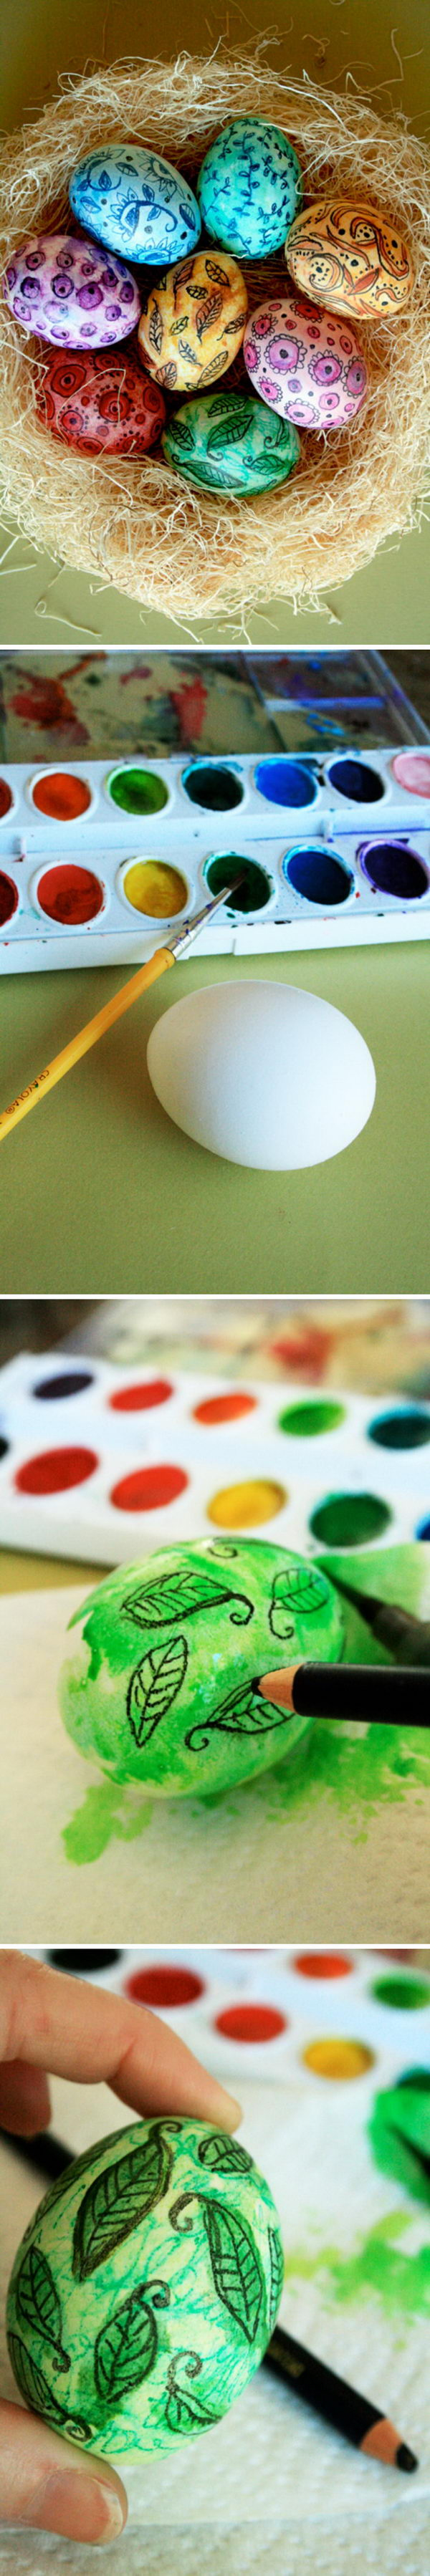 Use watercolor paint to color eggs.